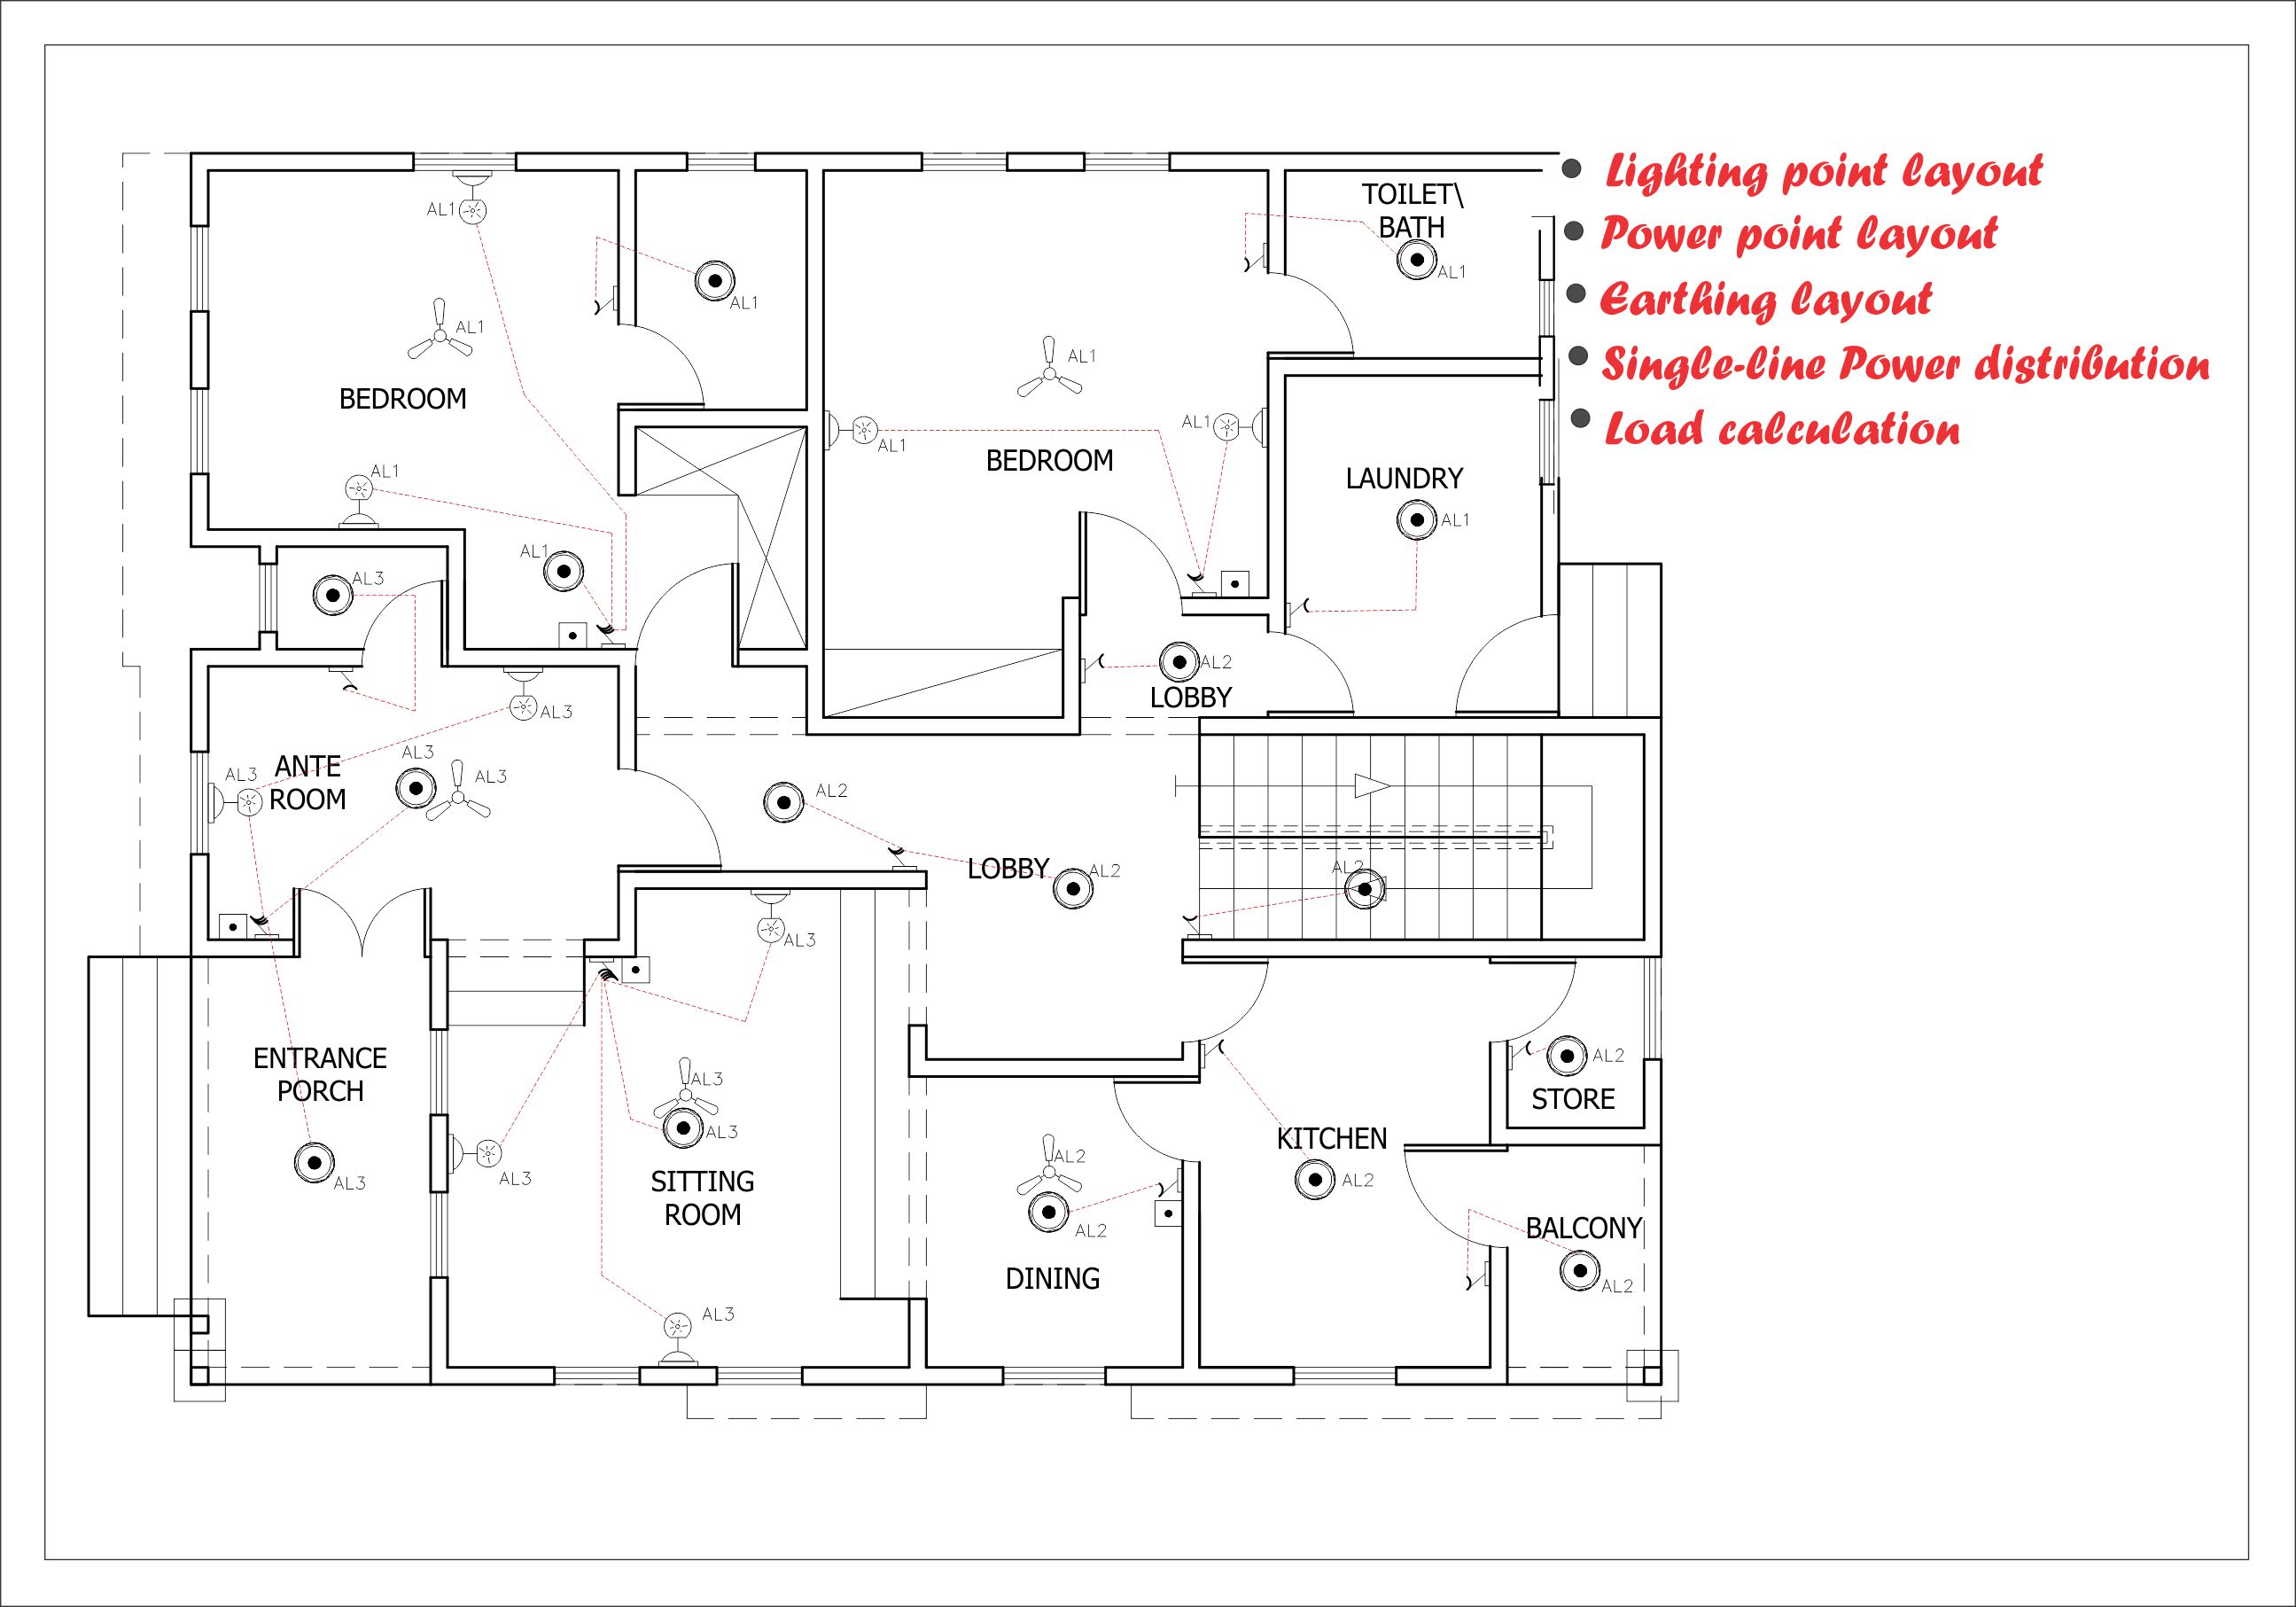 wiring house floor plan do electrical drawings for house wiring etc with autocad by  do electrical drawings for house wiring